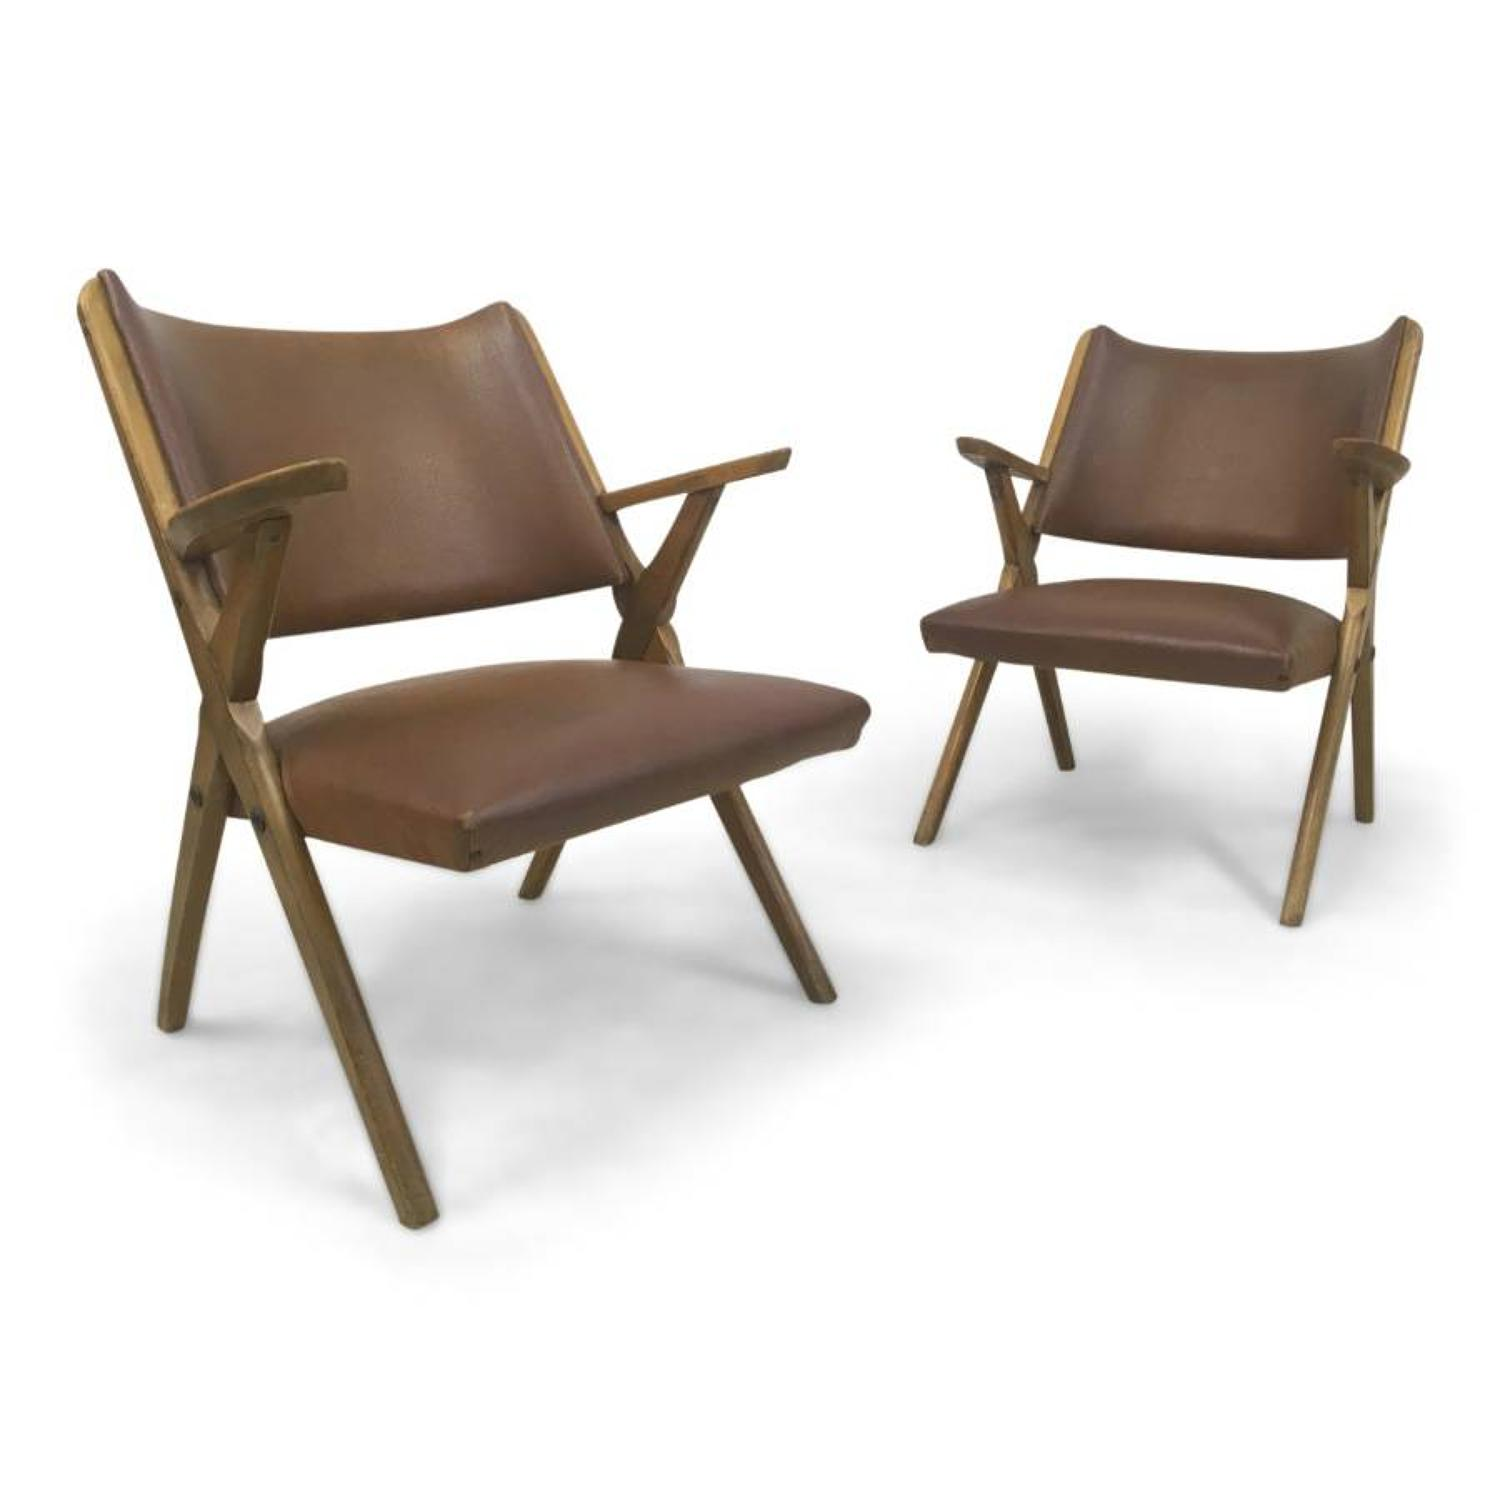 A pair of Italian wooden armchairs